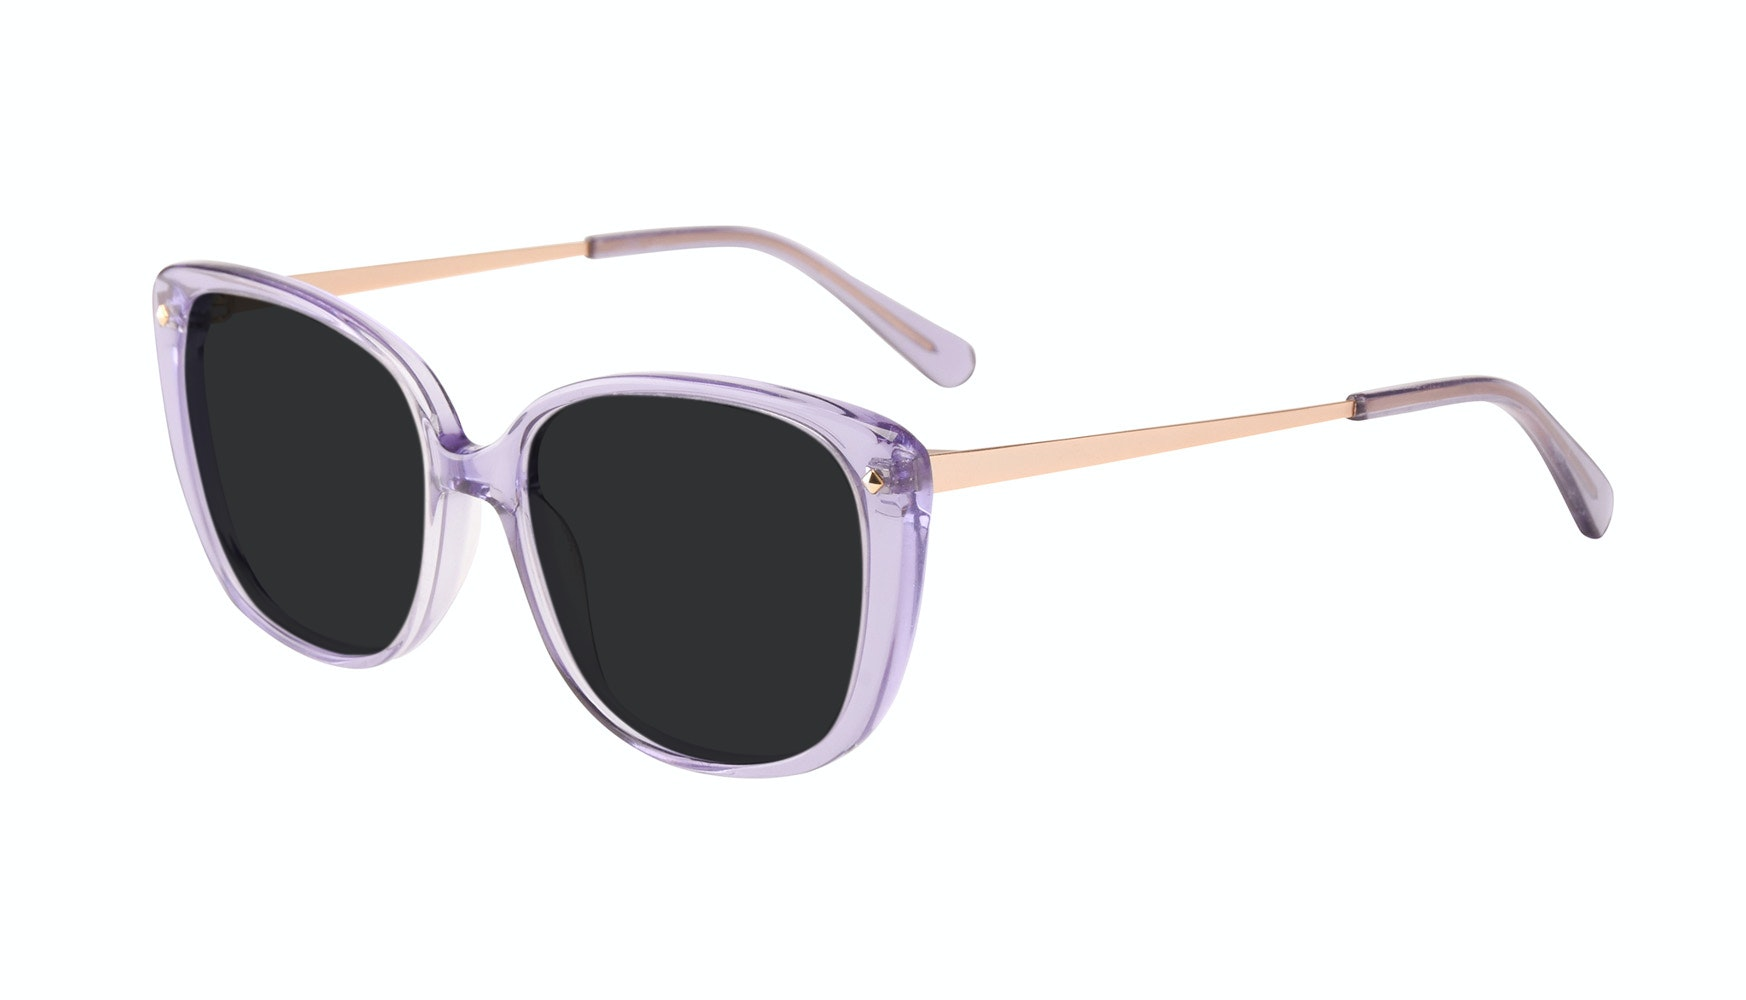 Affordable Fashion Glasses Square Sunglasses Women Japonisme Lavender Tilt